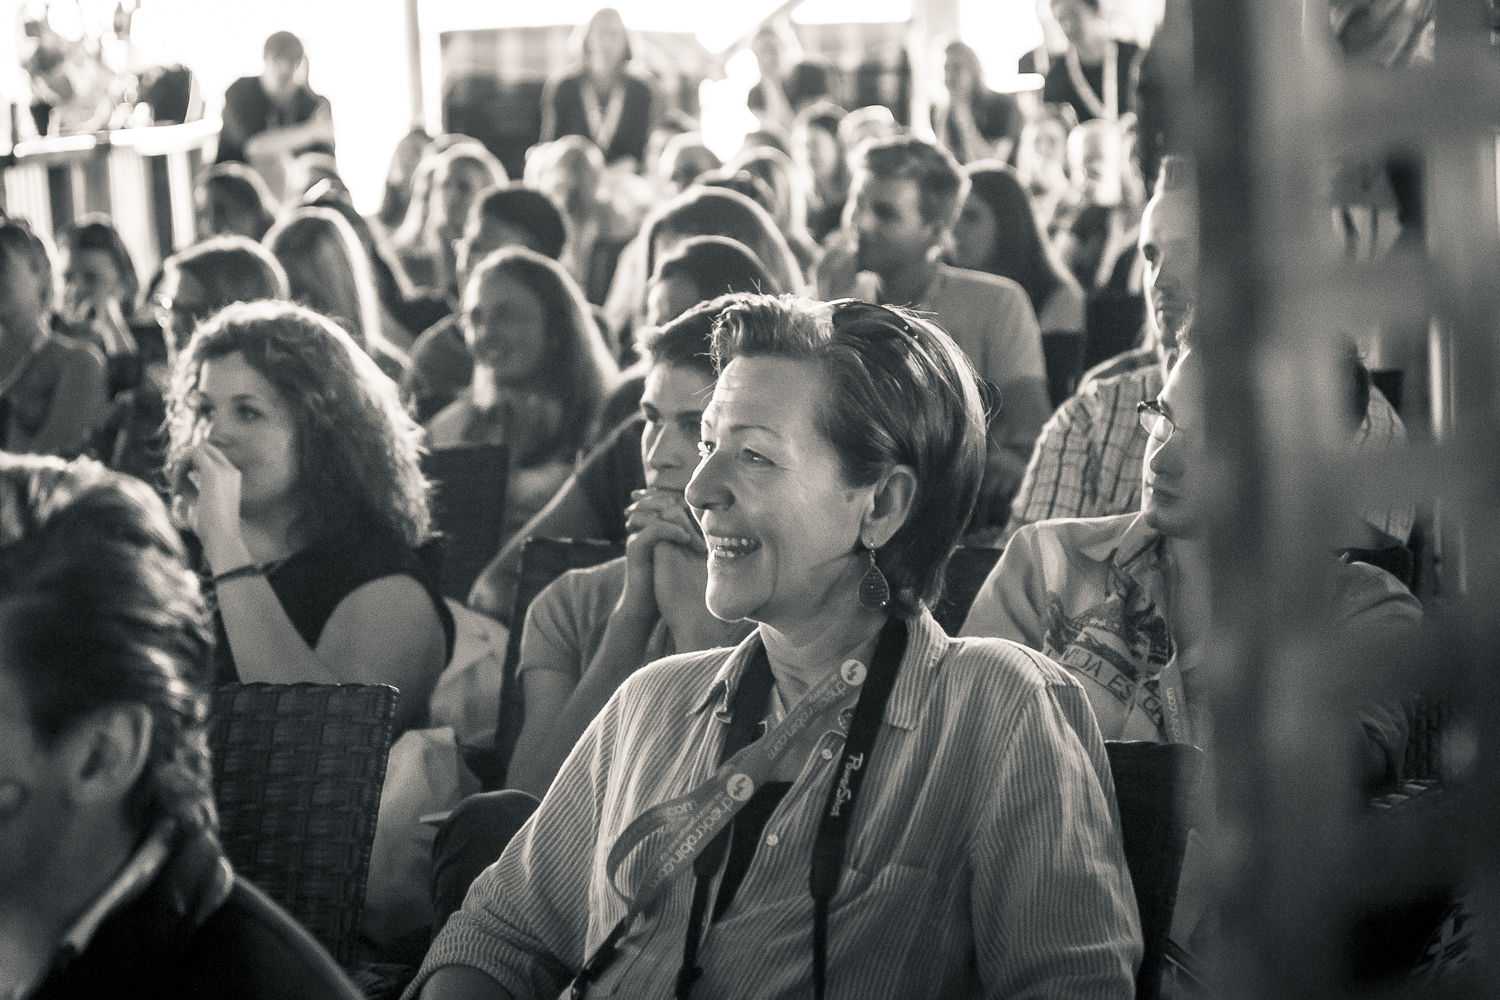 A b/w photo of the crowd enjoying TEDxDonauinsel 2014, photo taken by Manuel Gruber